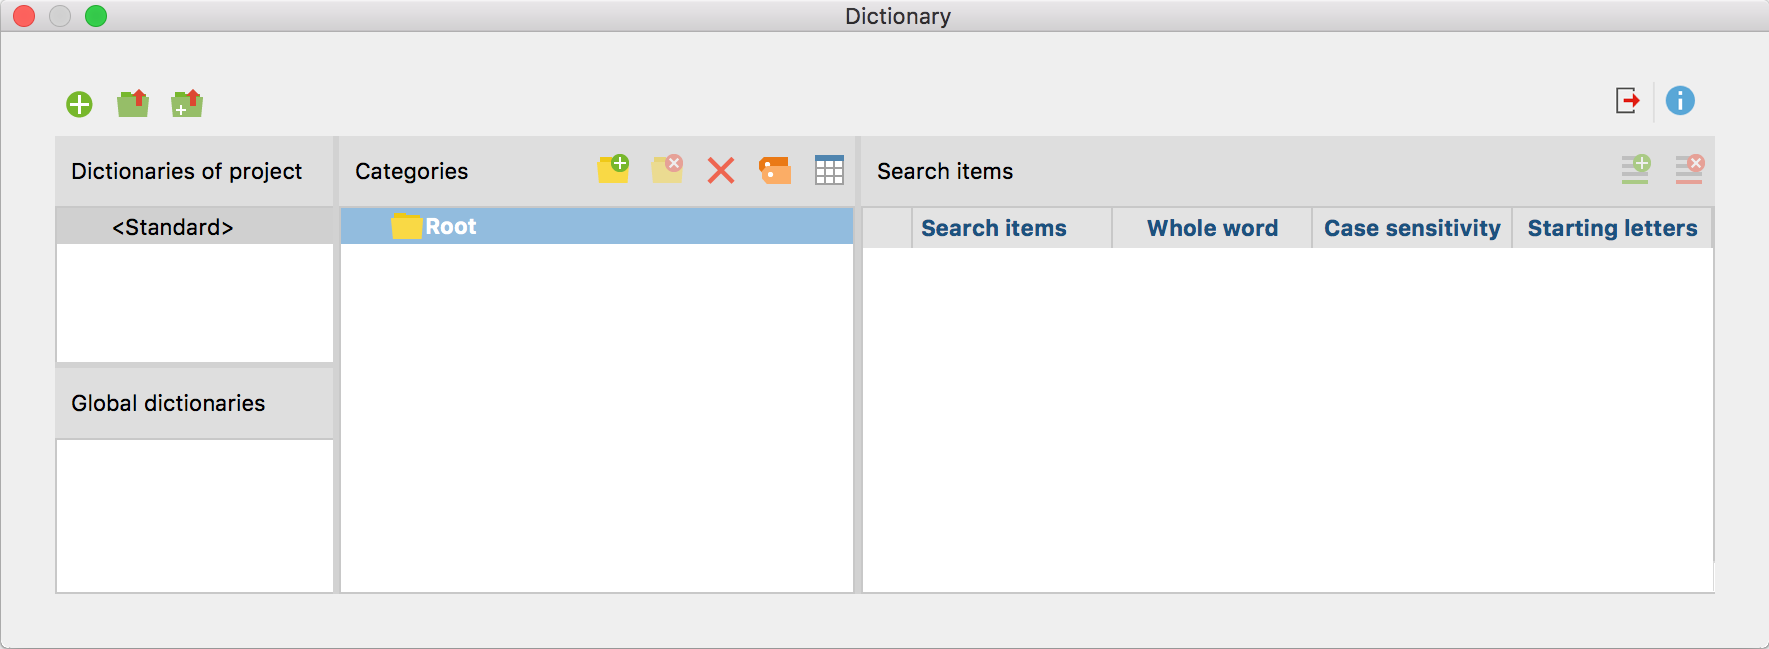 Window for managing dictionaries